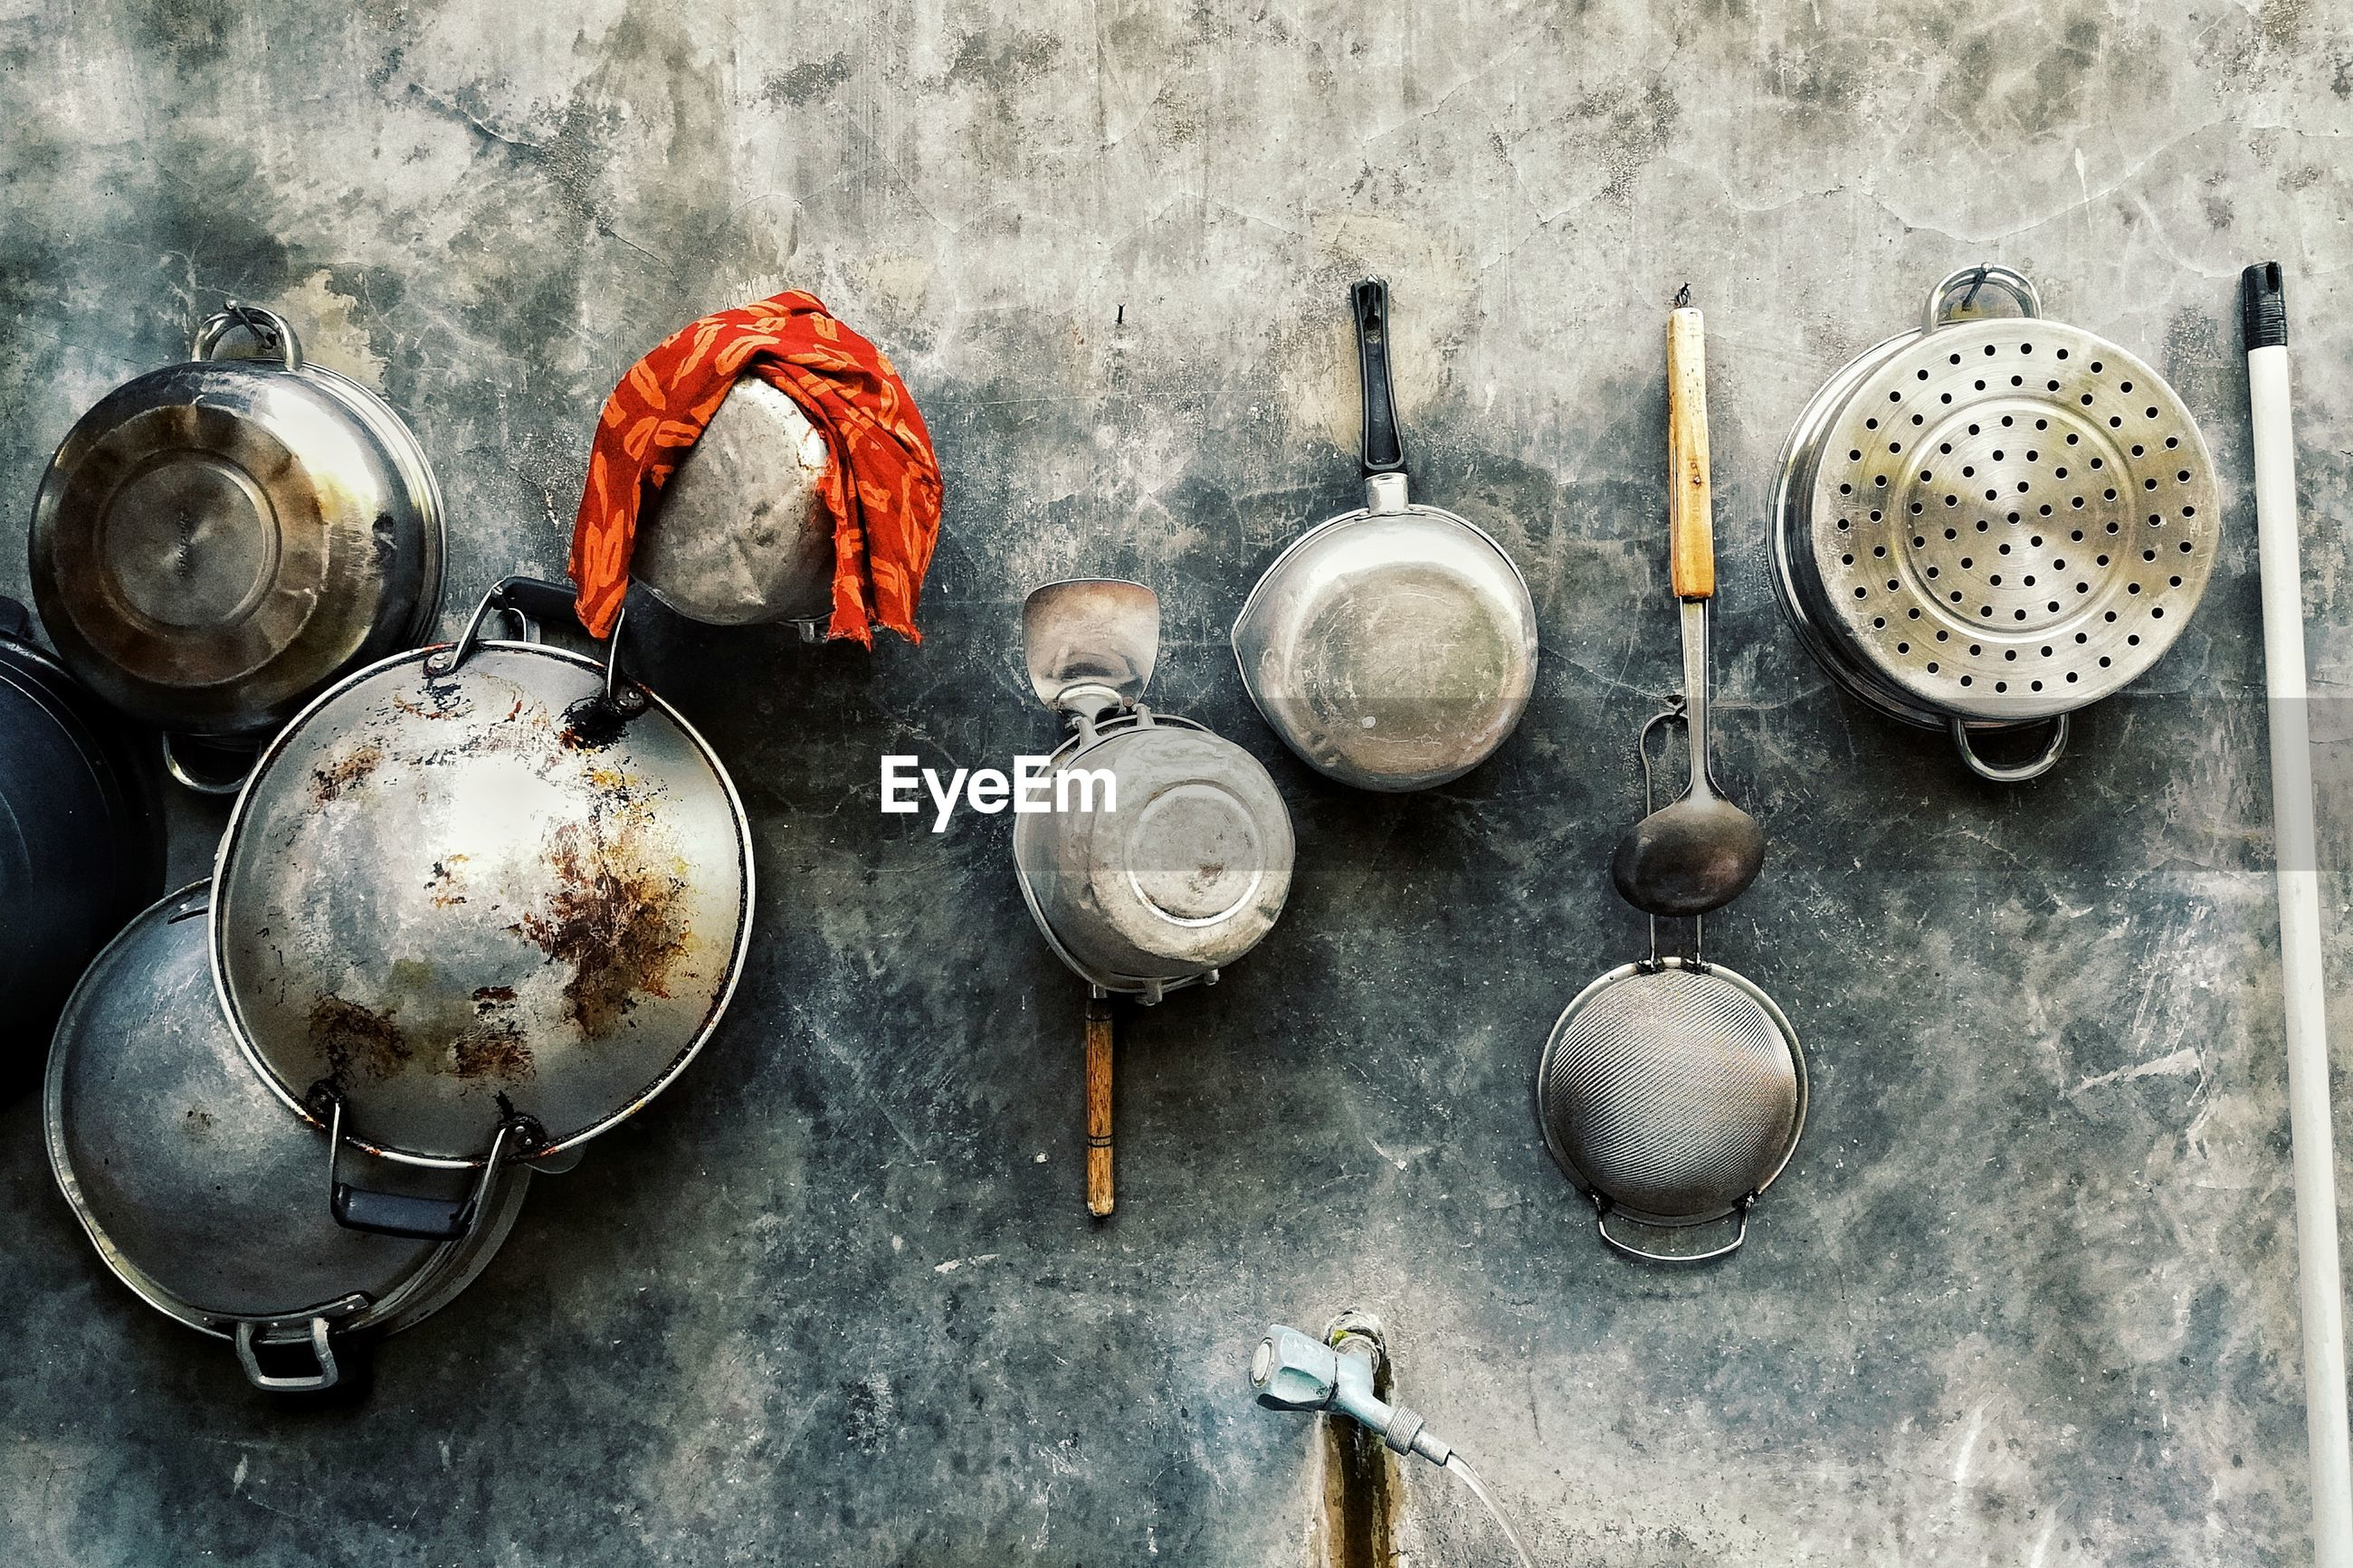 Cooking ware